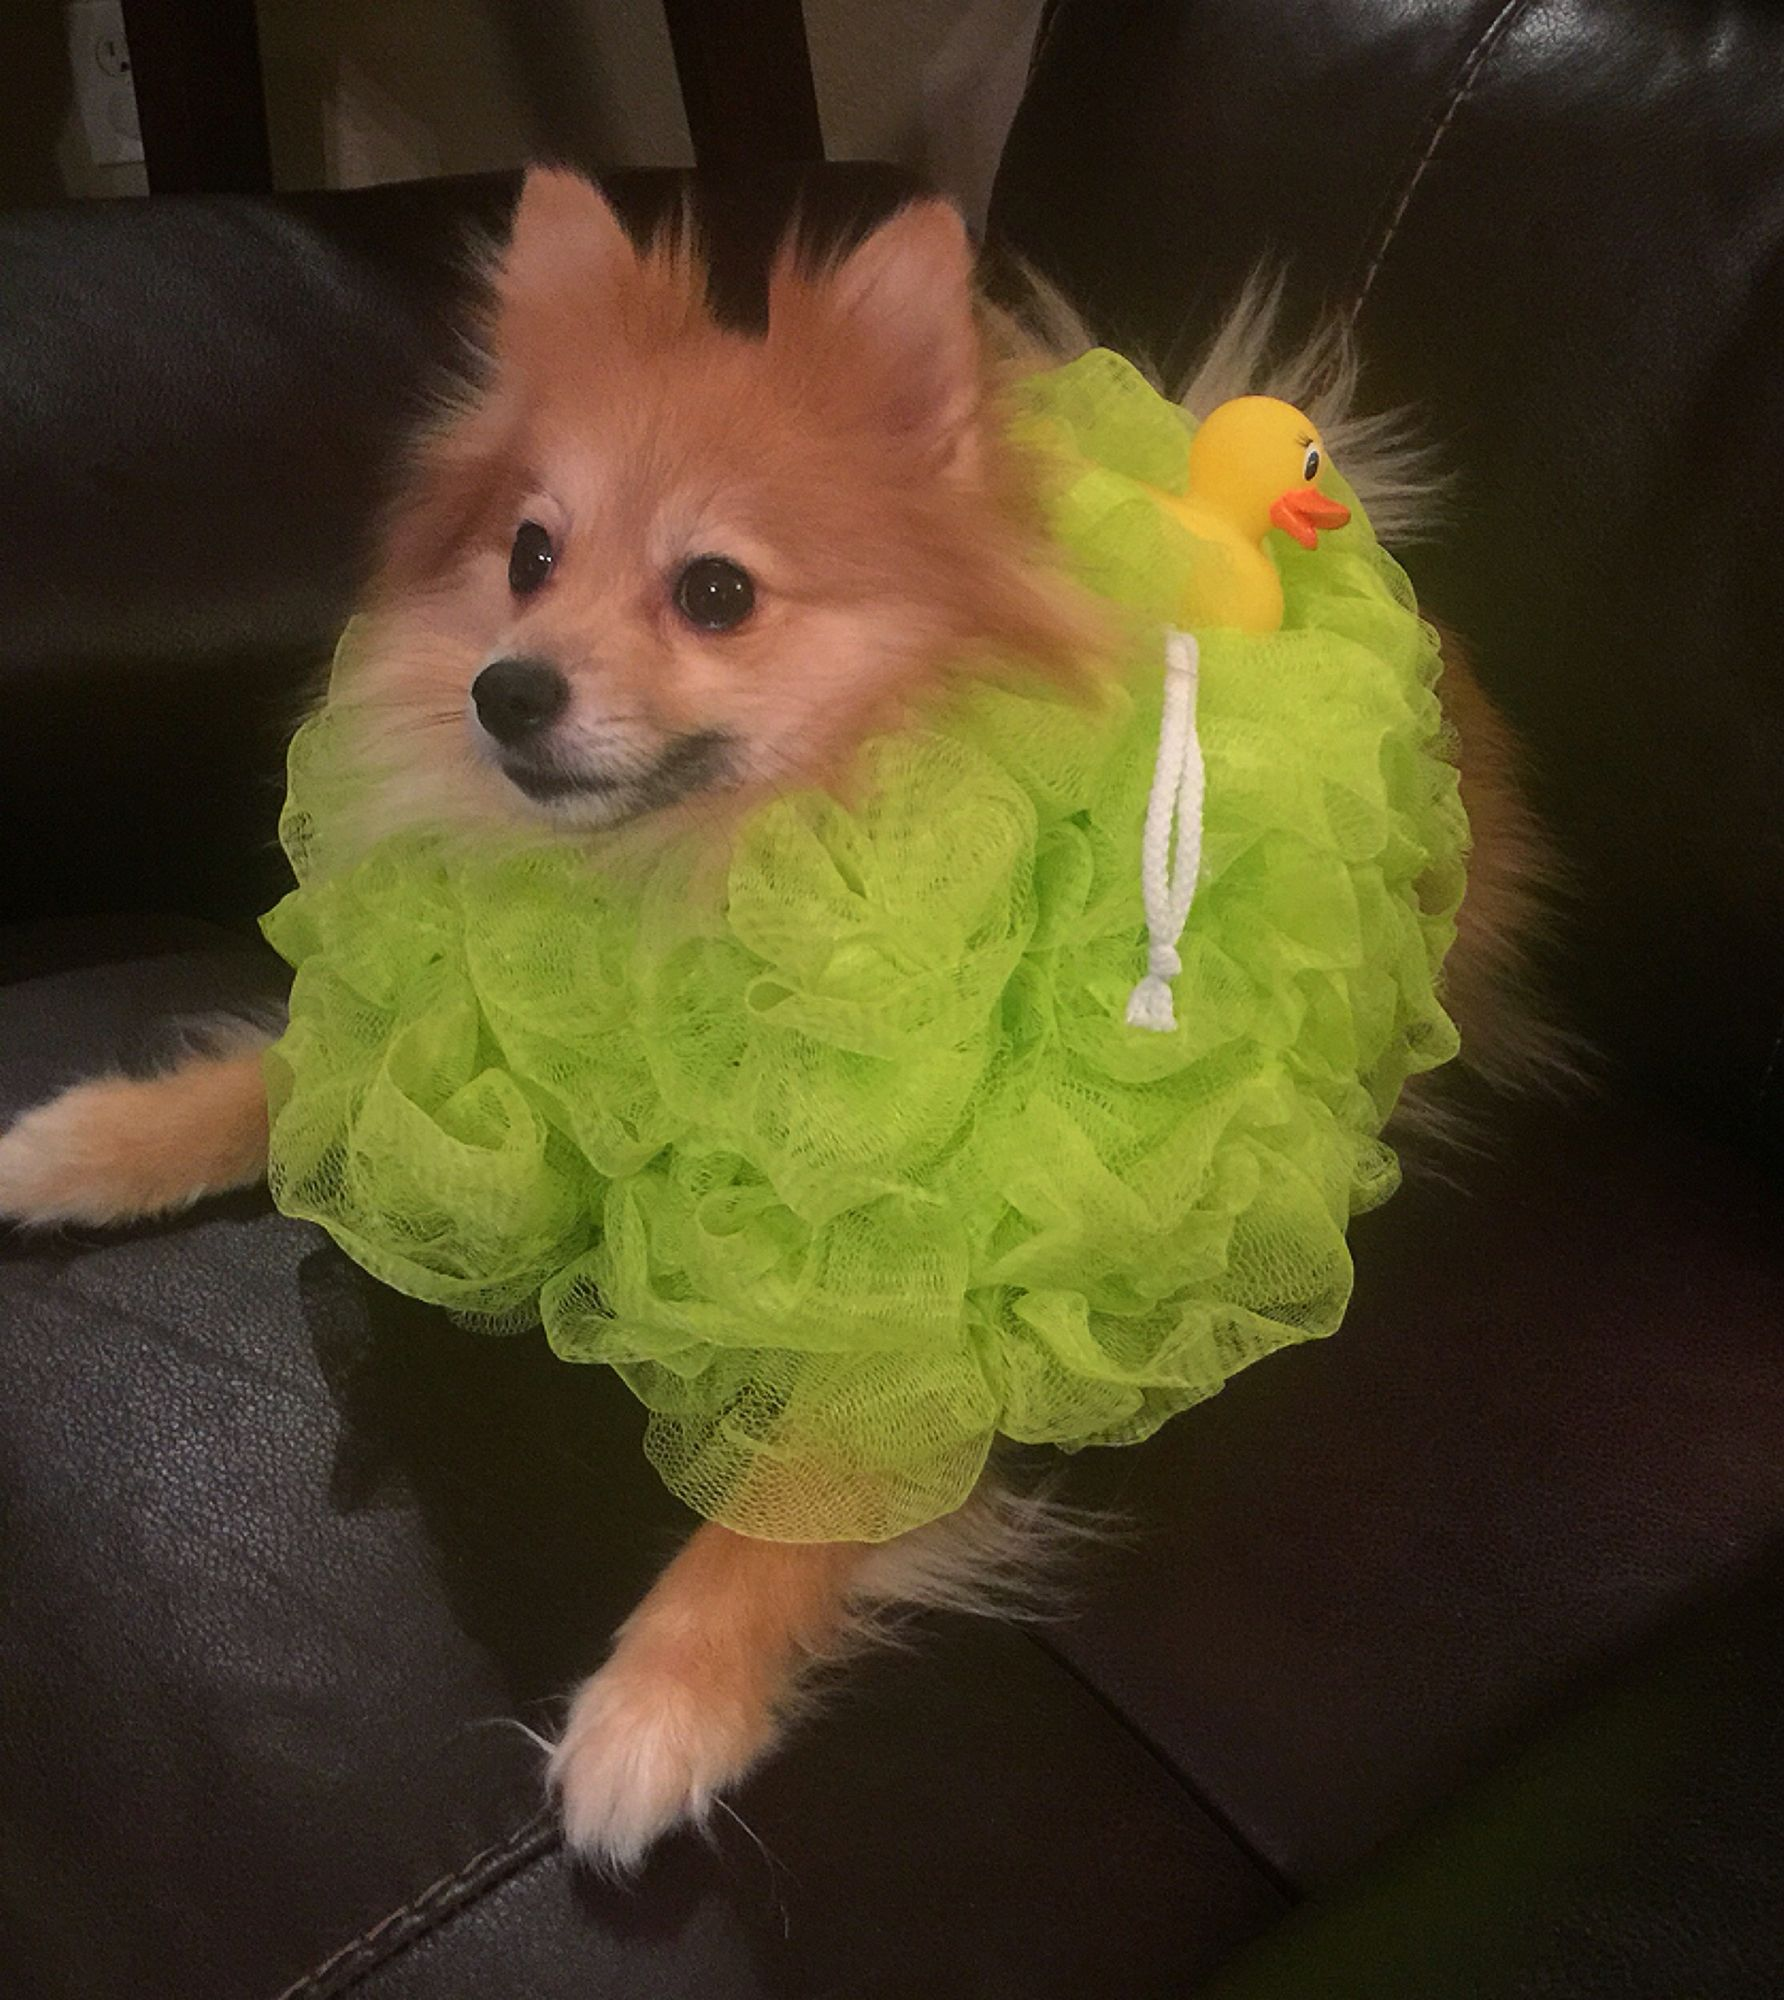 i made this hilarious doggie halloween costume!! a pomeranian shower